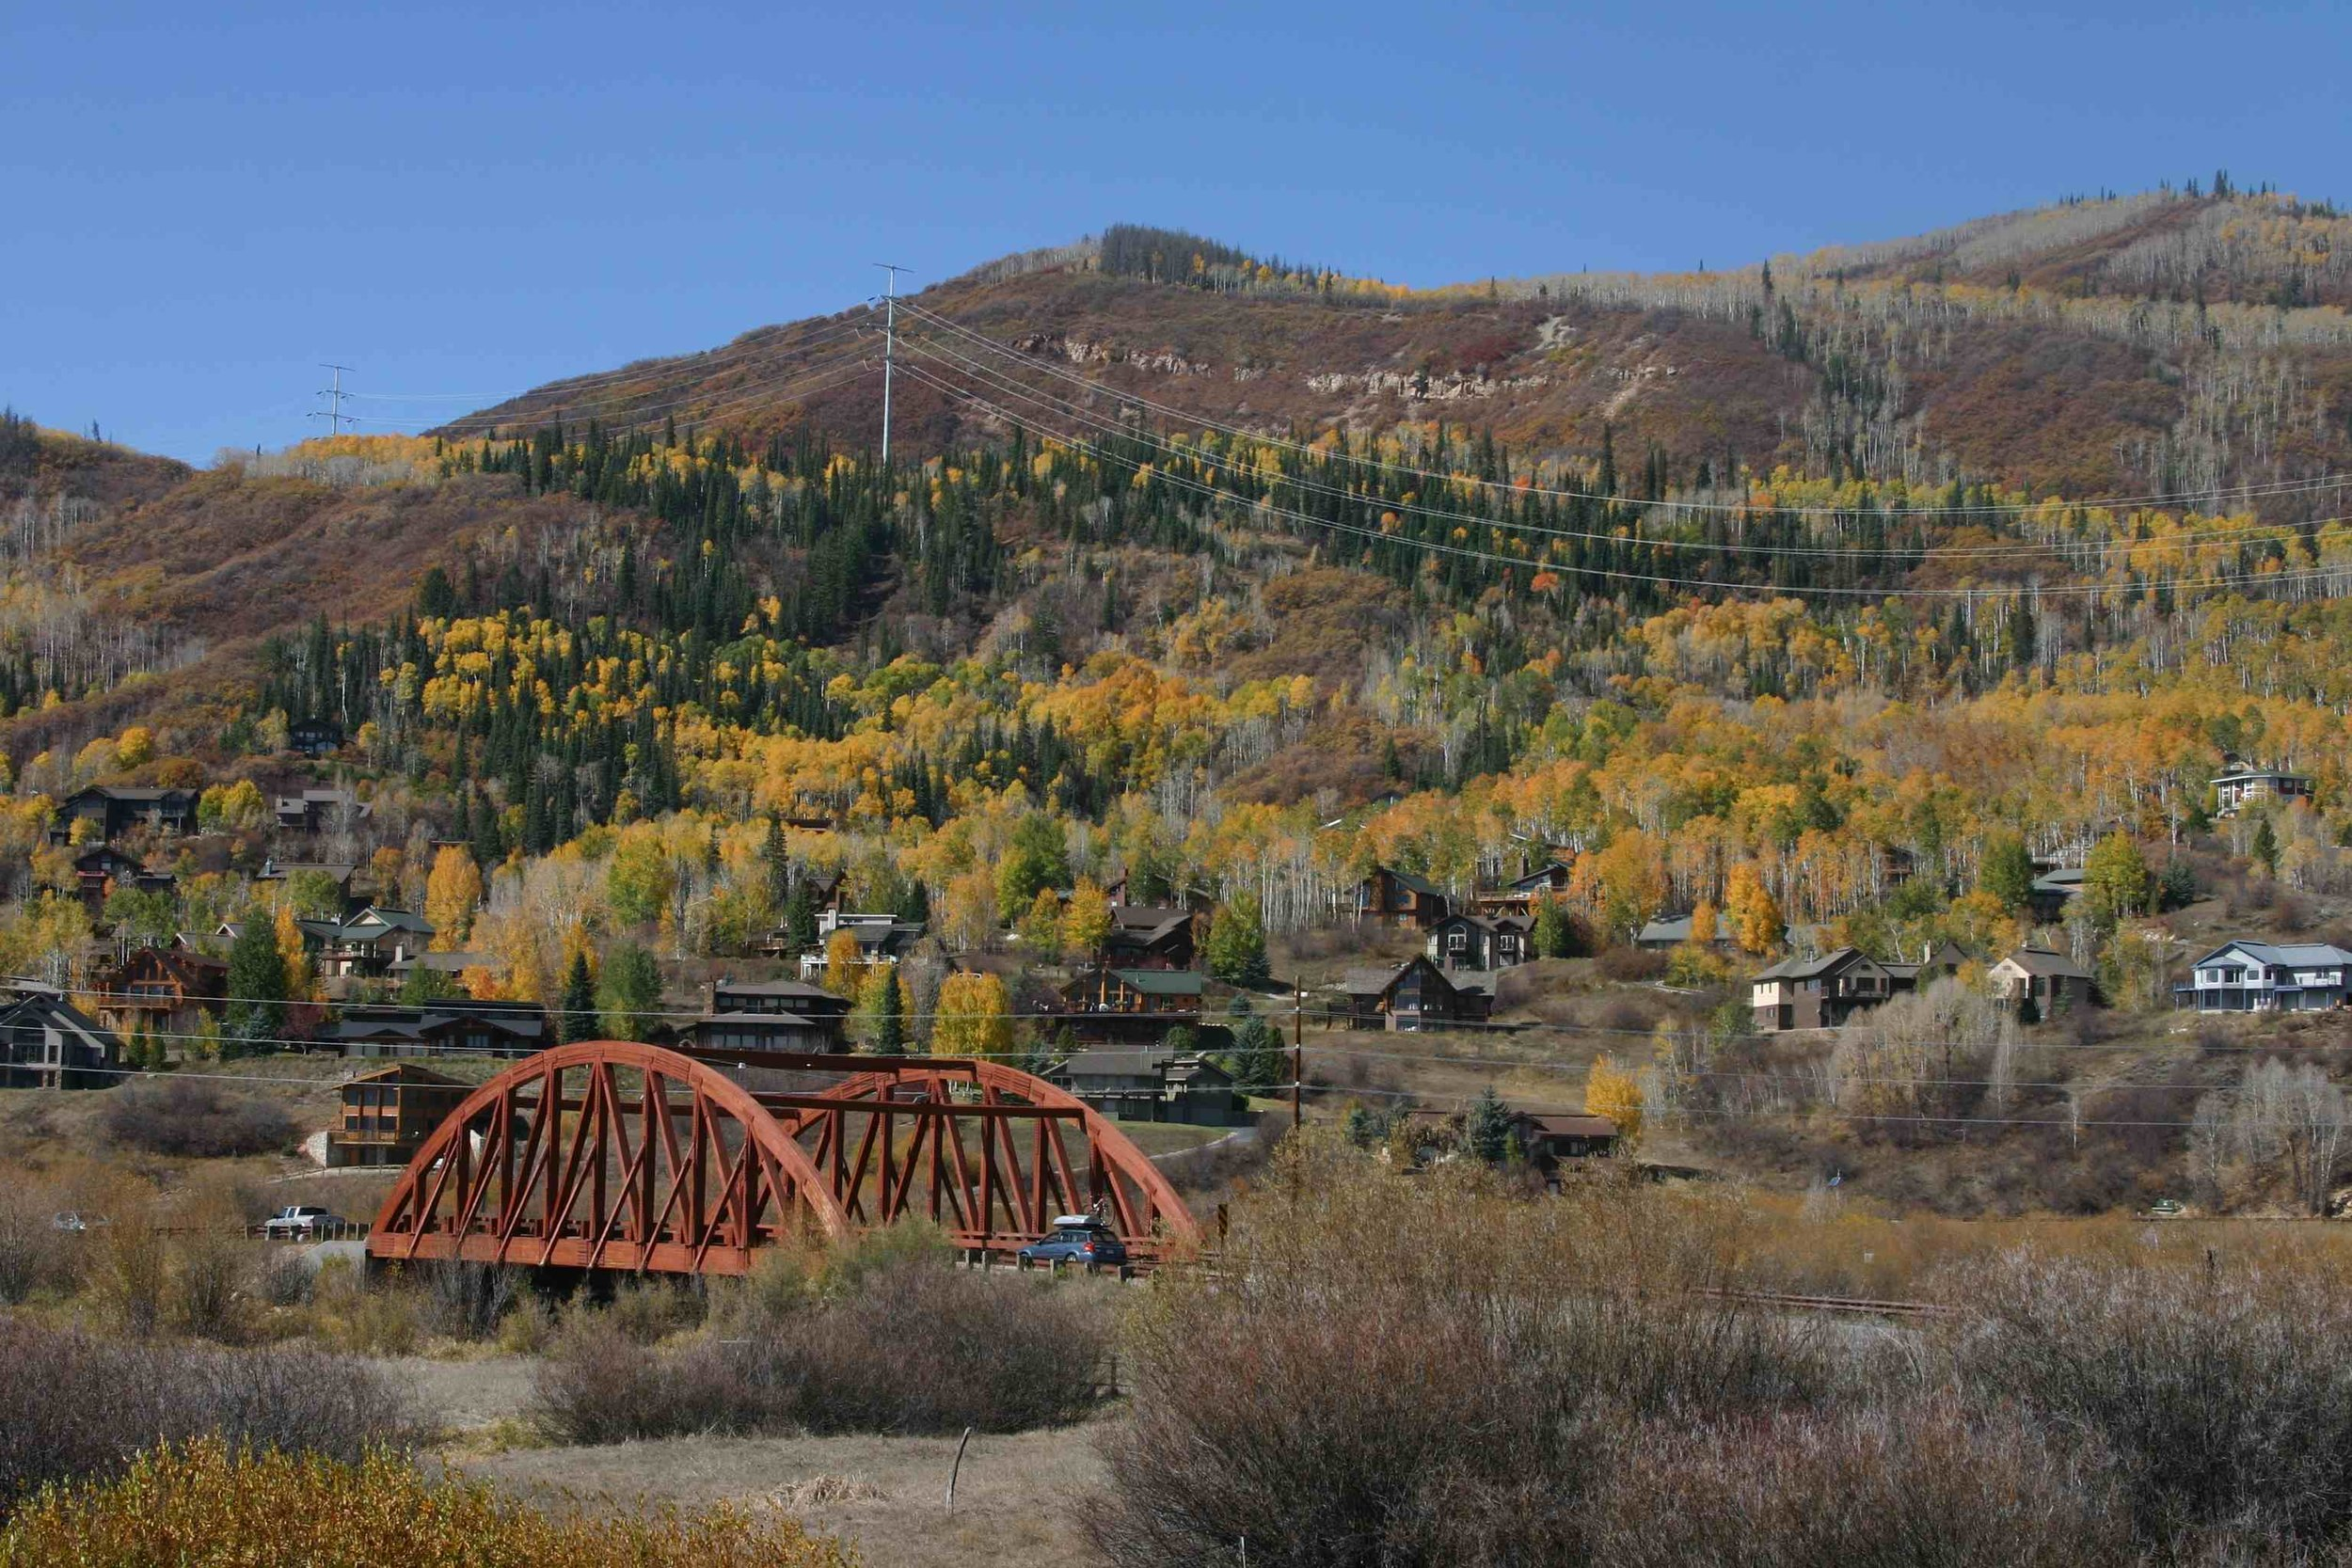 Yampa River Valley, Steamboat Springs, CO, October 2012